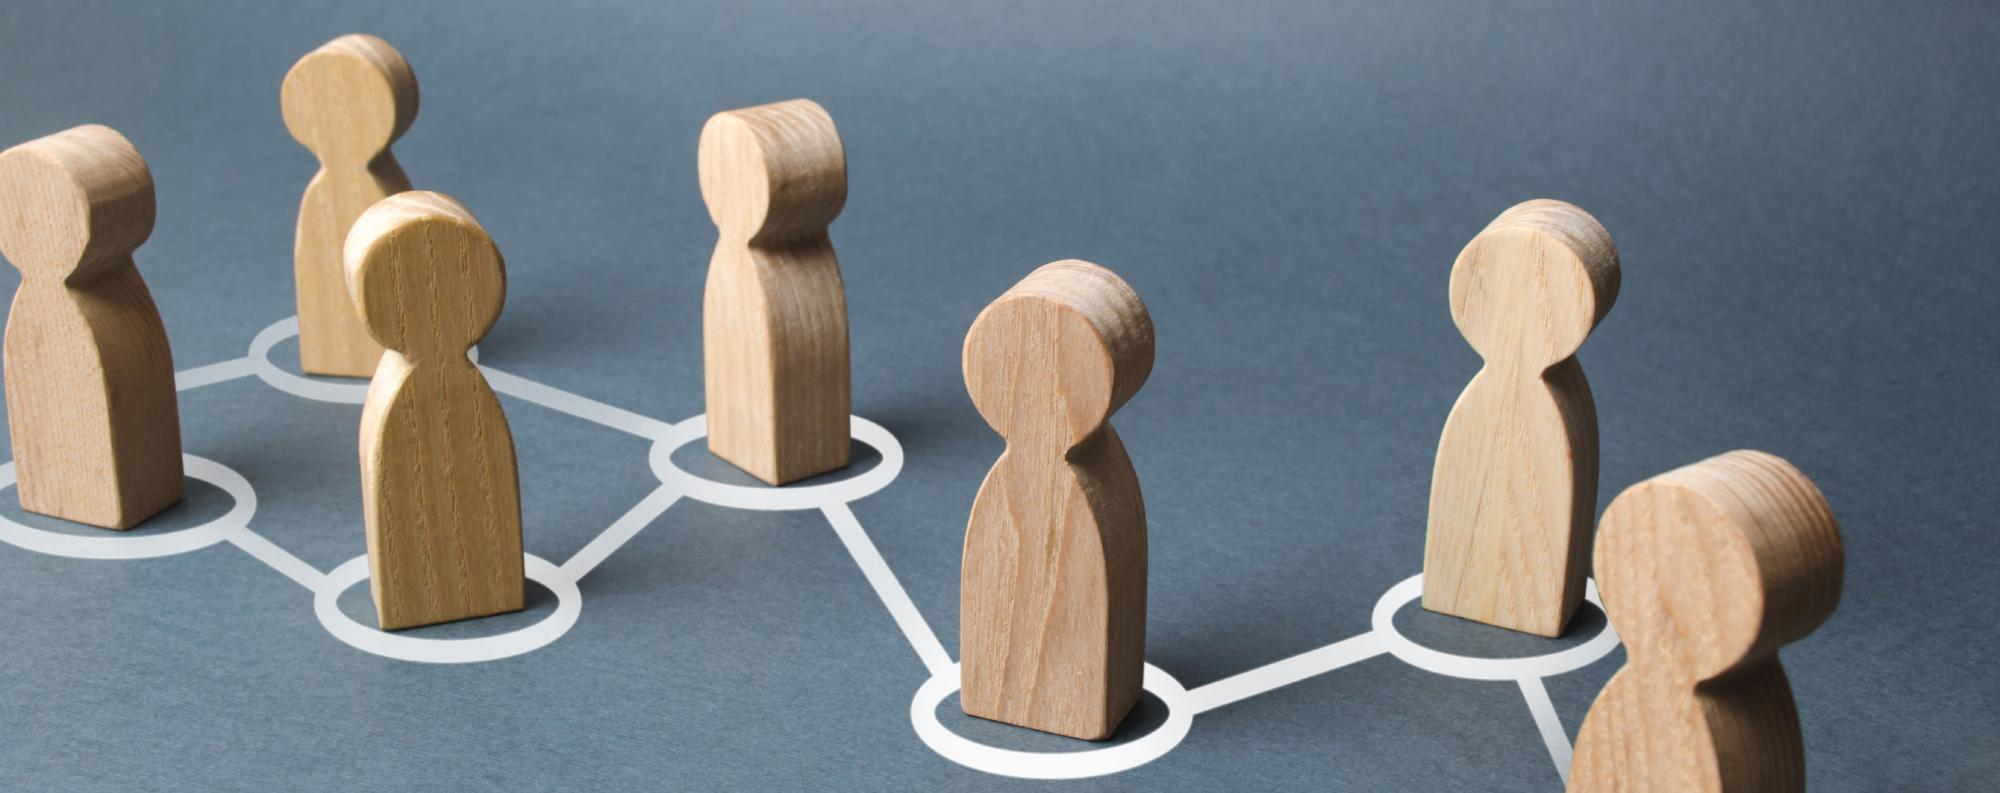 Wood figurines inside chalk circles with interconnecting lines